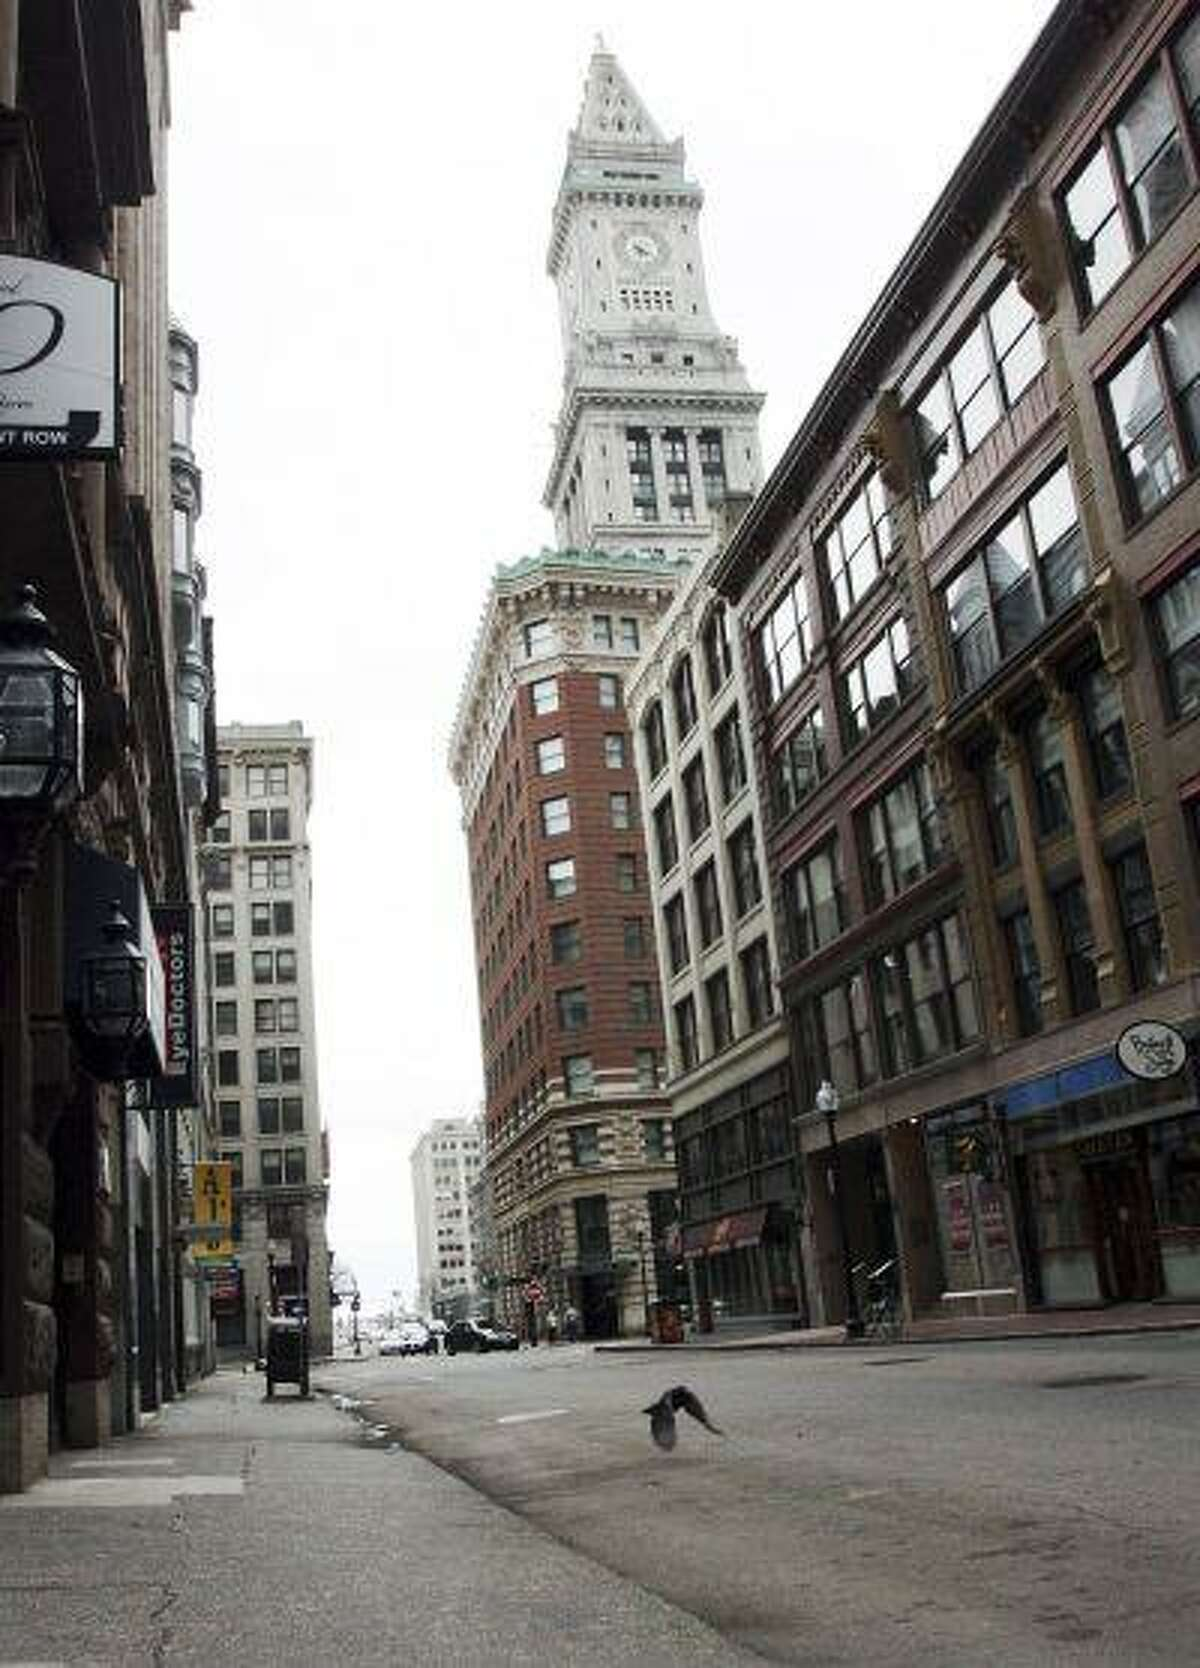 A pigeon flies along deserted State Street, as the Custom House hotel towers in the background in downtown Boston Friday, April 19, 2013. Mass transit was suspended while a suspect was hunted following bombings near the finish line of the Boston Marathon Monday. (AP Photo/Bill Sikes)